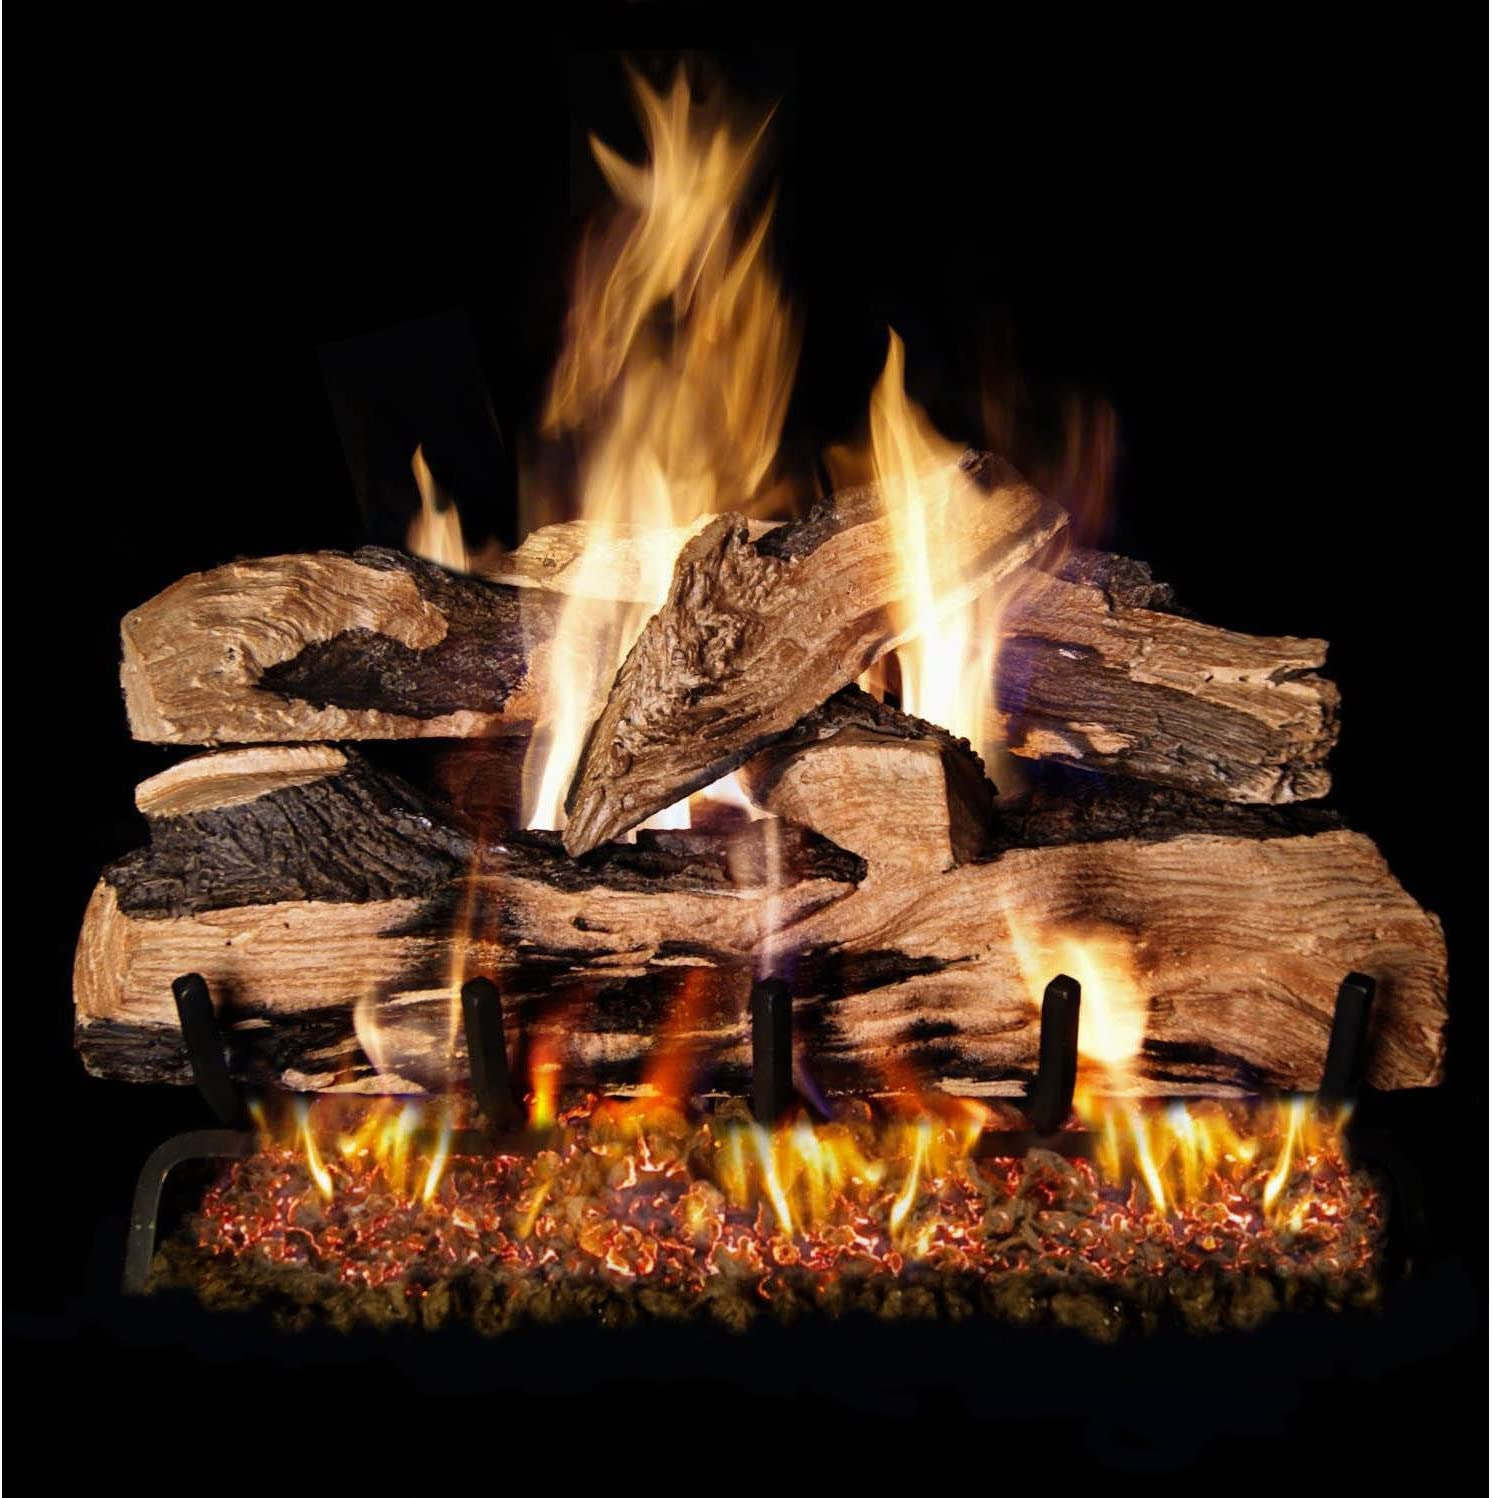 B001LH1ATG Peterson Real Fyre 24-inch Split Oak Designer Plus Log Set With Vented Propane Ansi Certified G46 Burner - Basic On/Off Remote 81YoxZd5kOL.SL1498_